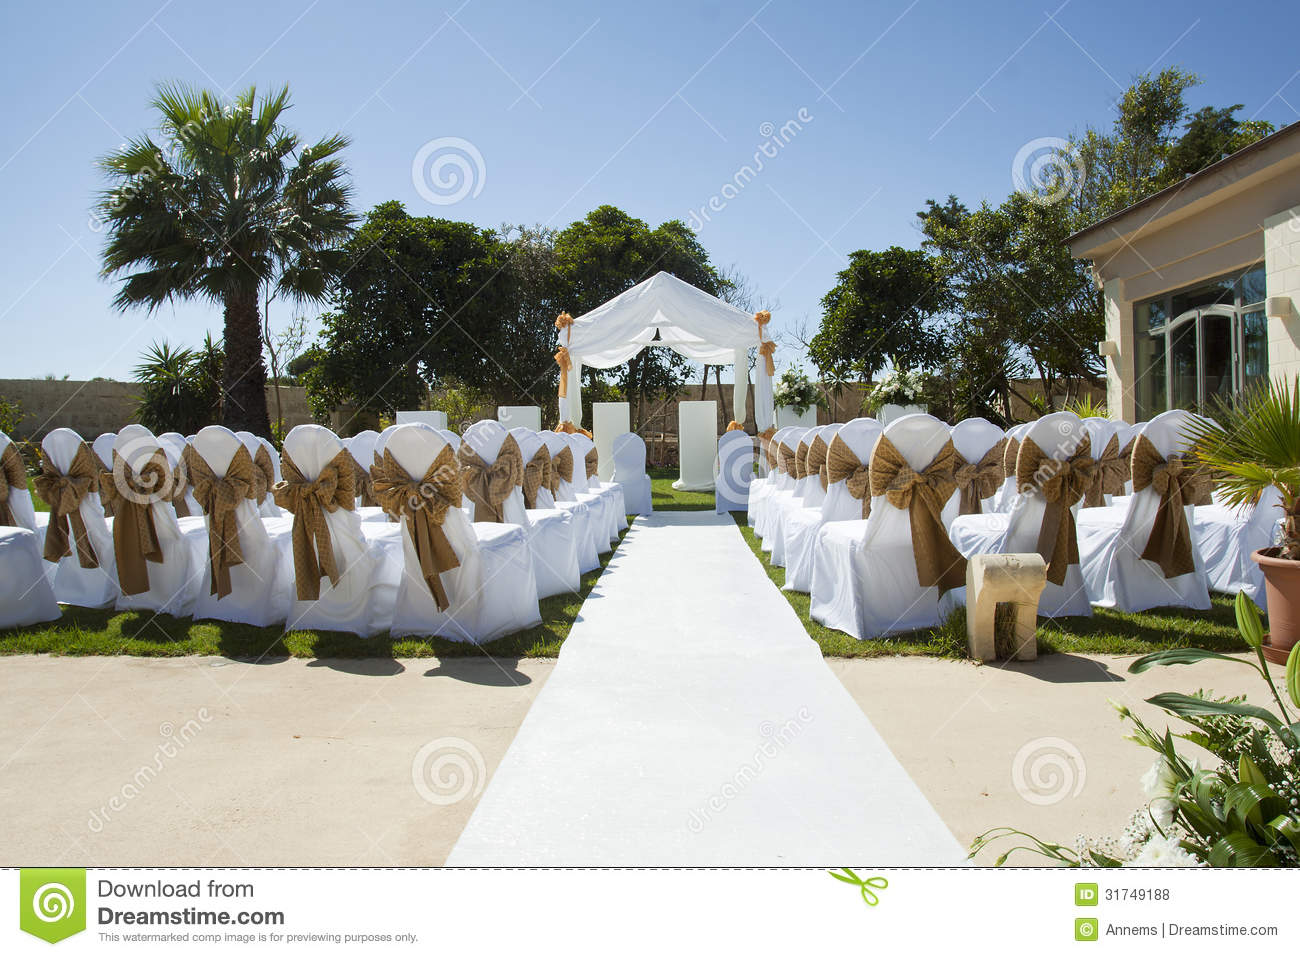 Small Wedding Tent In Garden With Chairs On Lawn Royalty